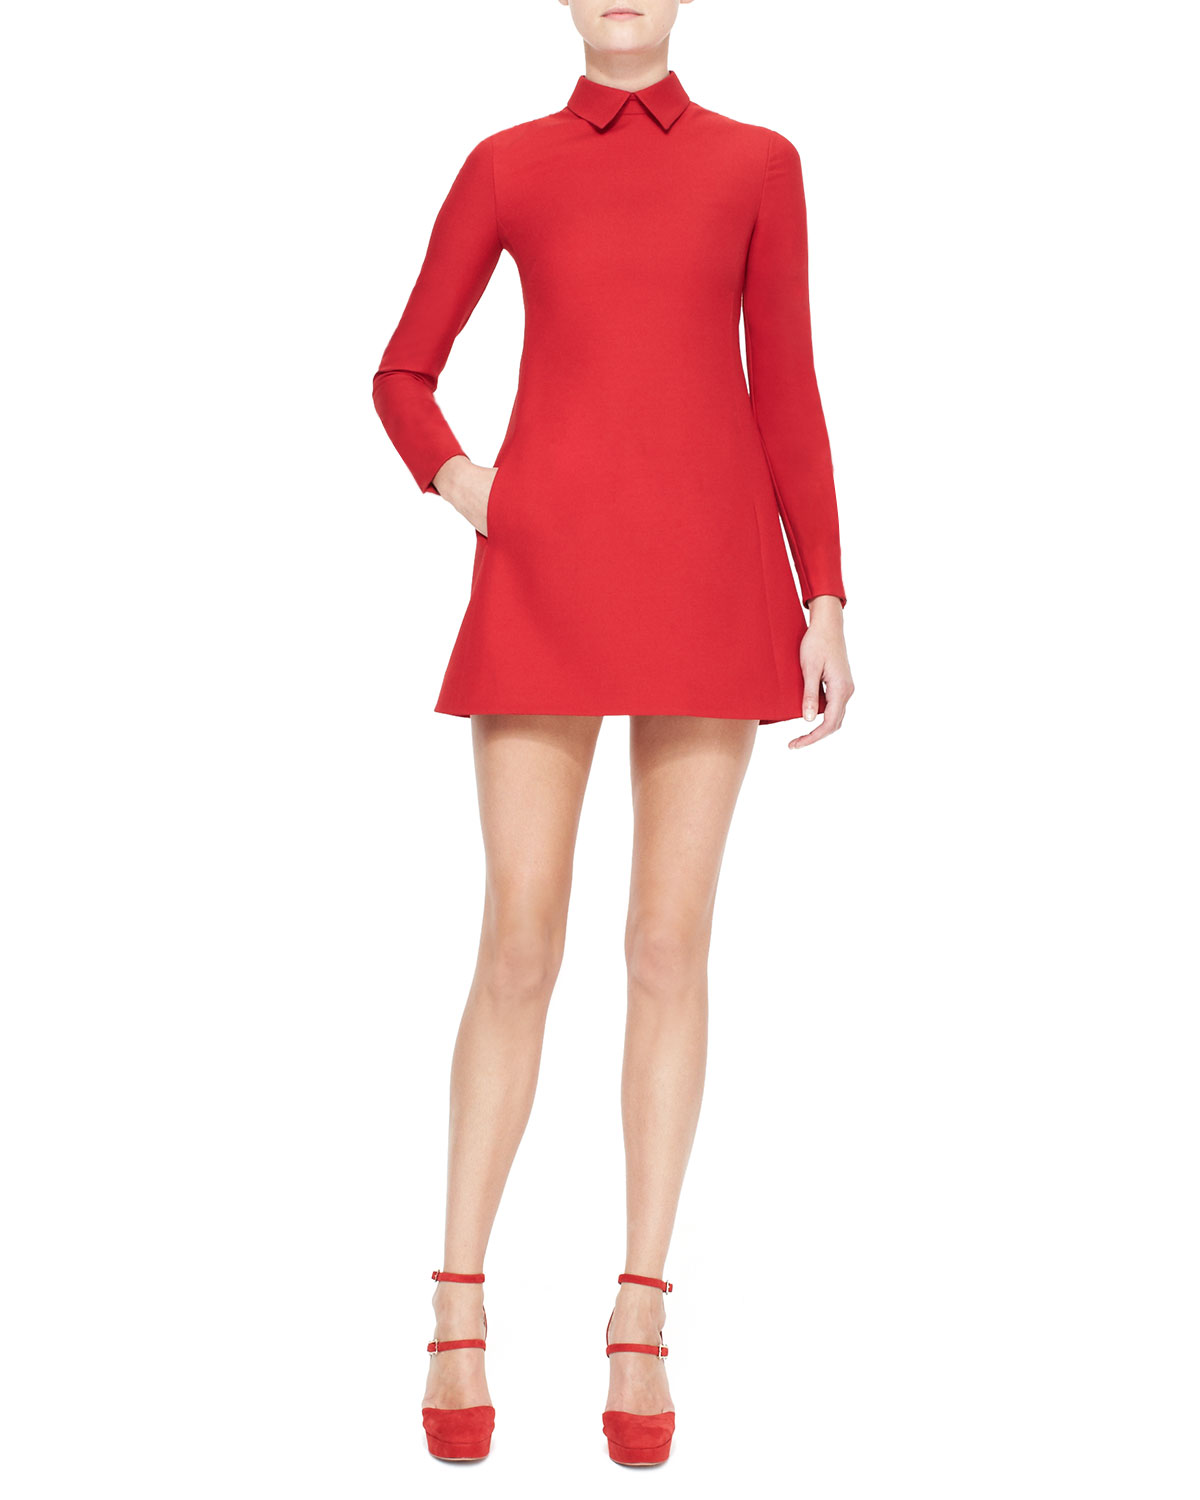 Womens Collared Long Sleeve Dress, Red   Valentino   Red (8)